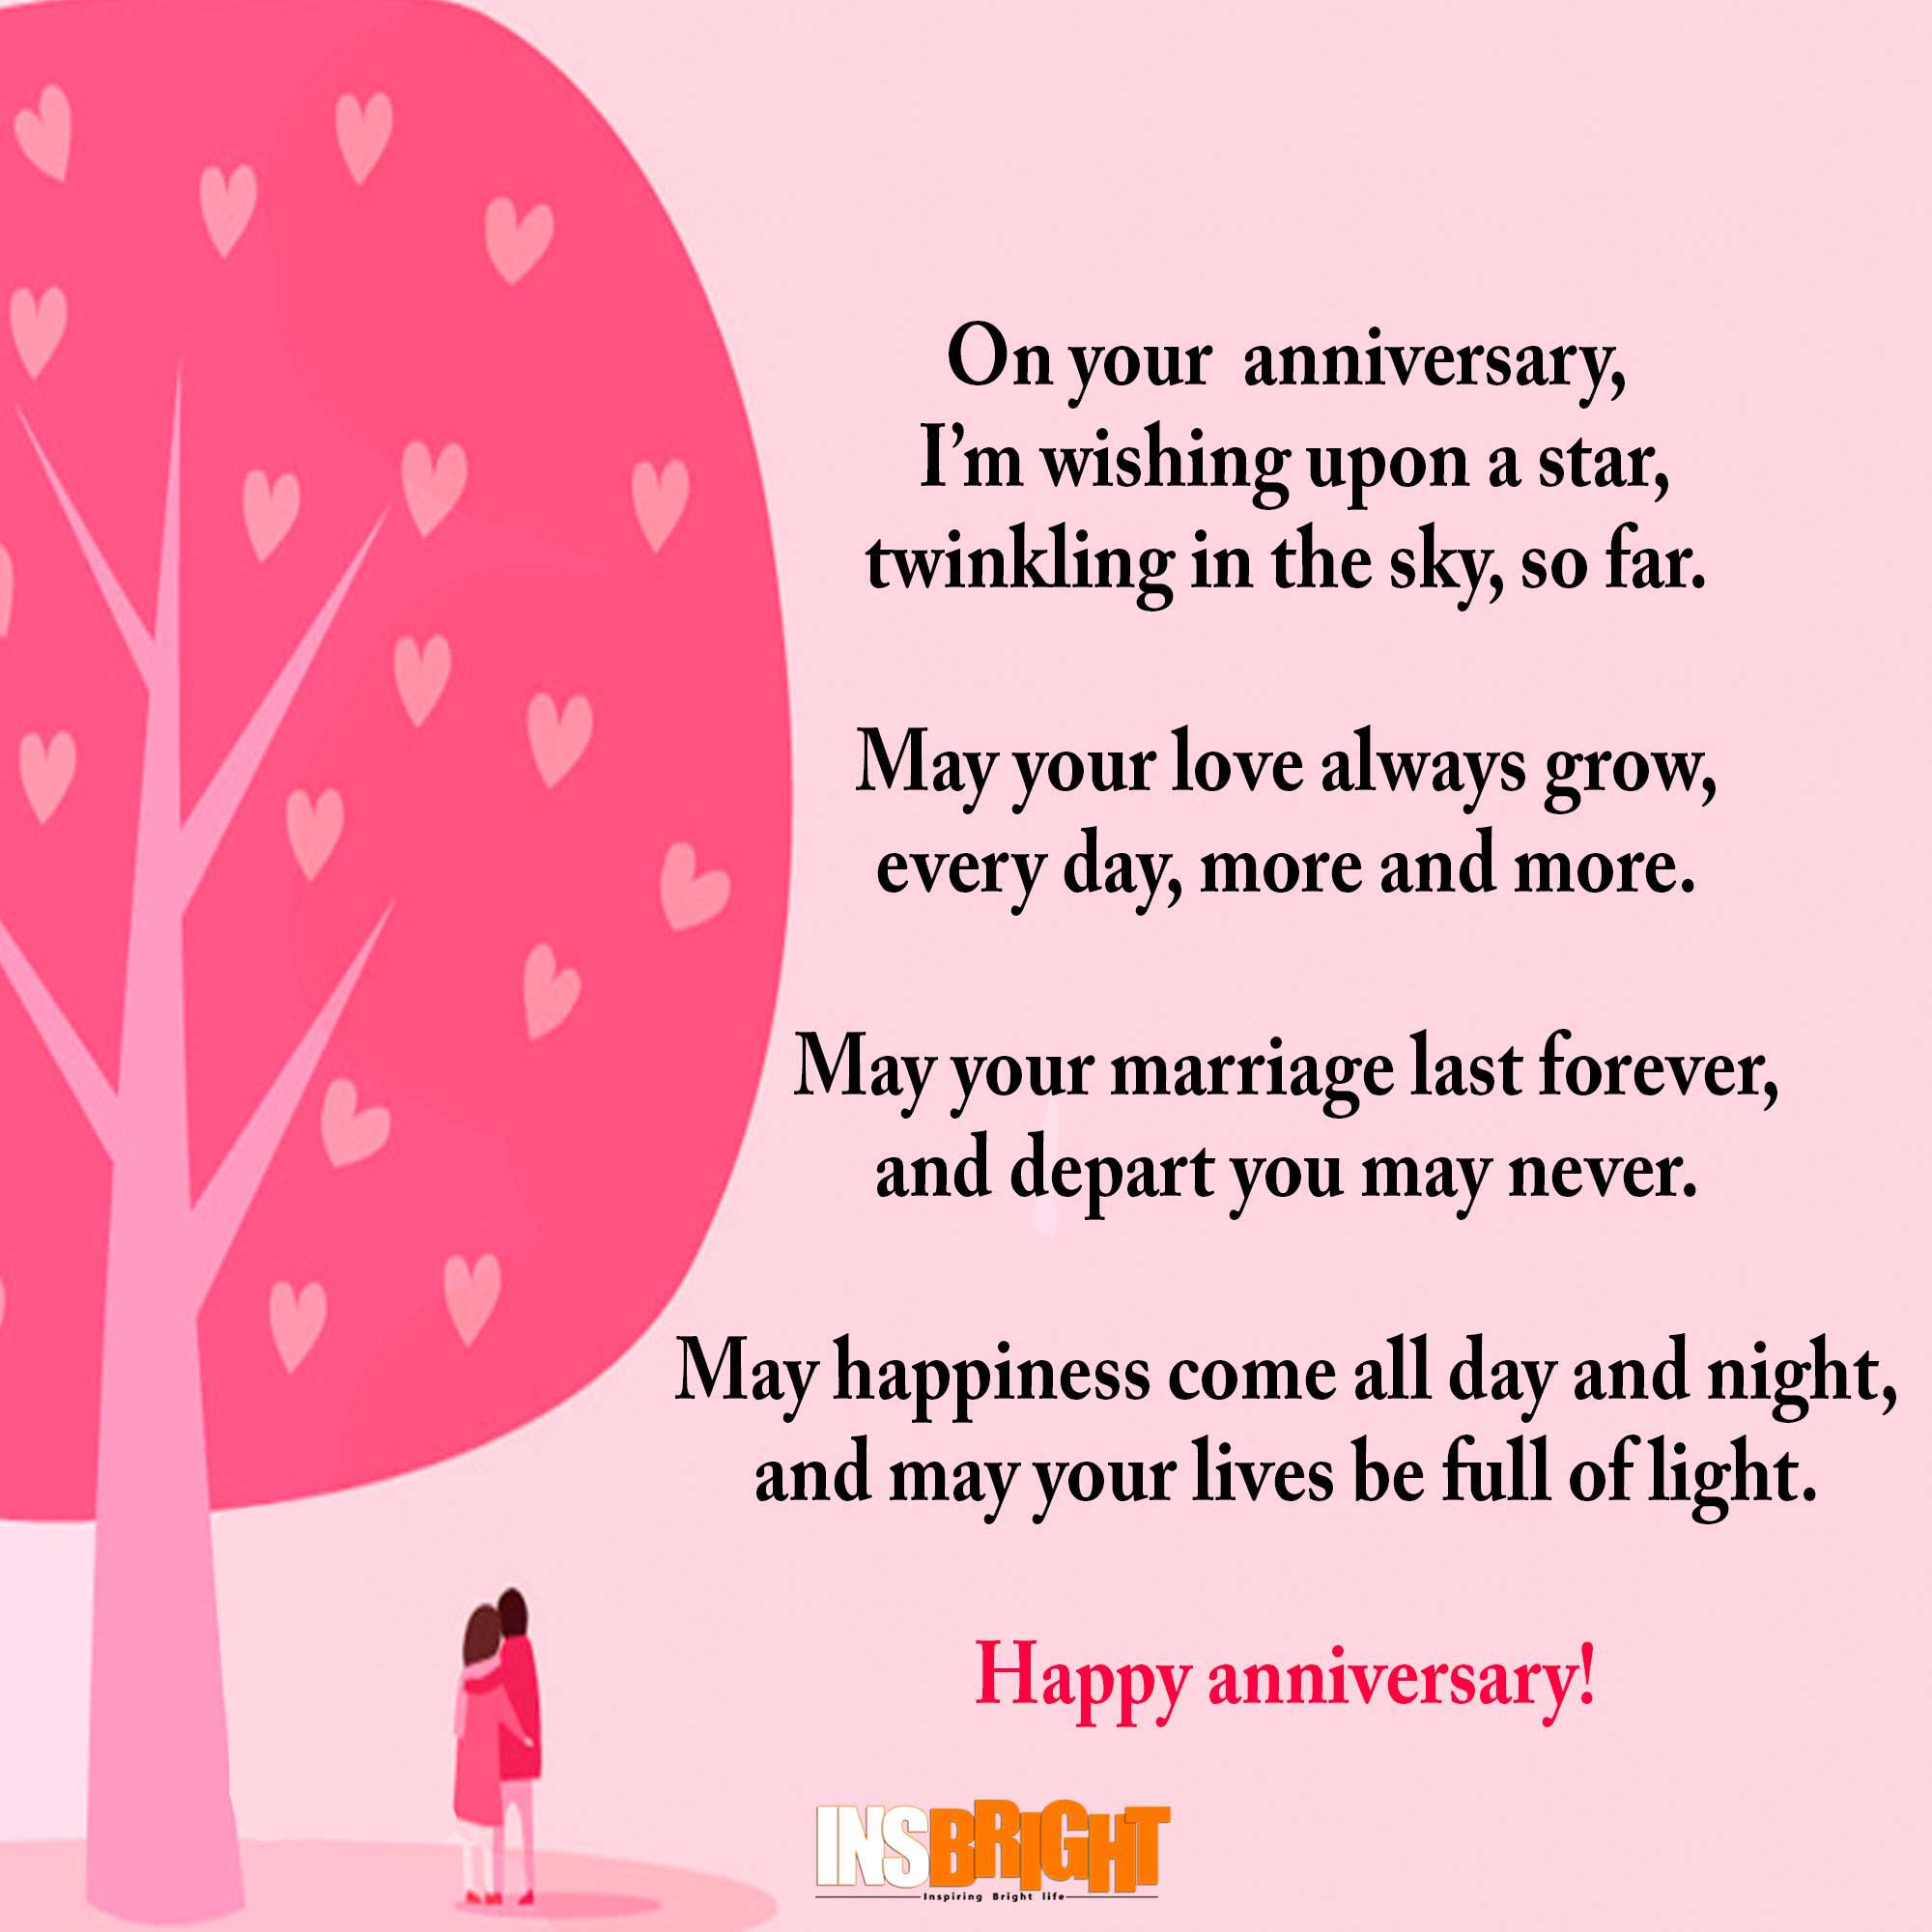 happy anniversary poem Free anniversary poems this free wedding anniversary message, in free verse, is a happy anniversary poem suitable for a greeting card inspiration.